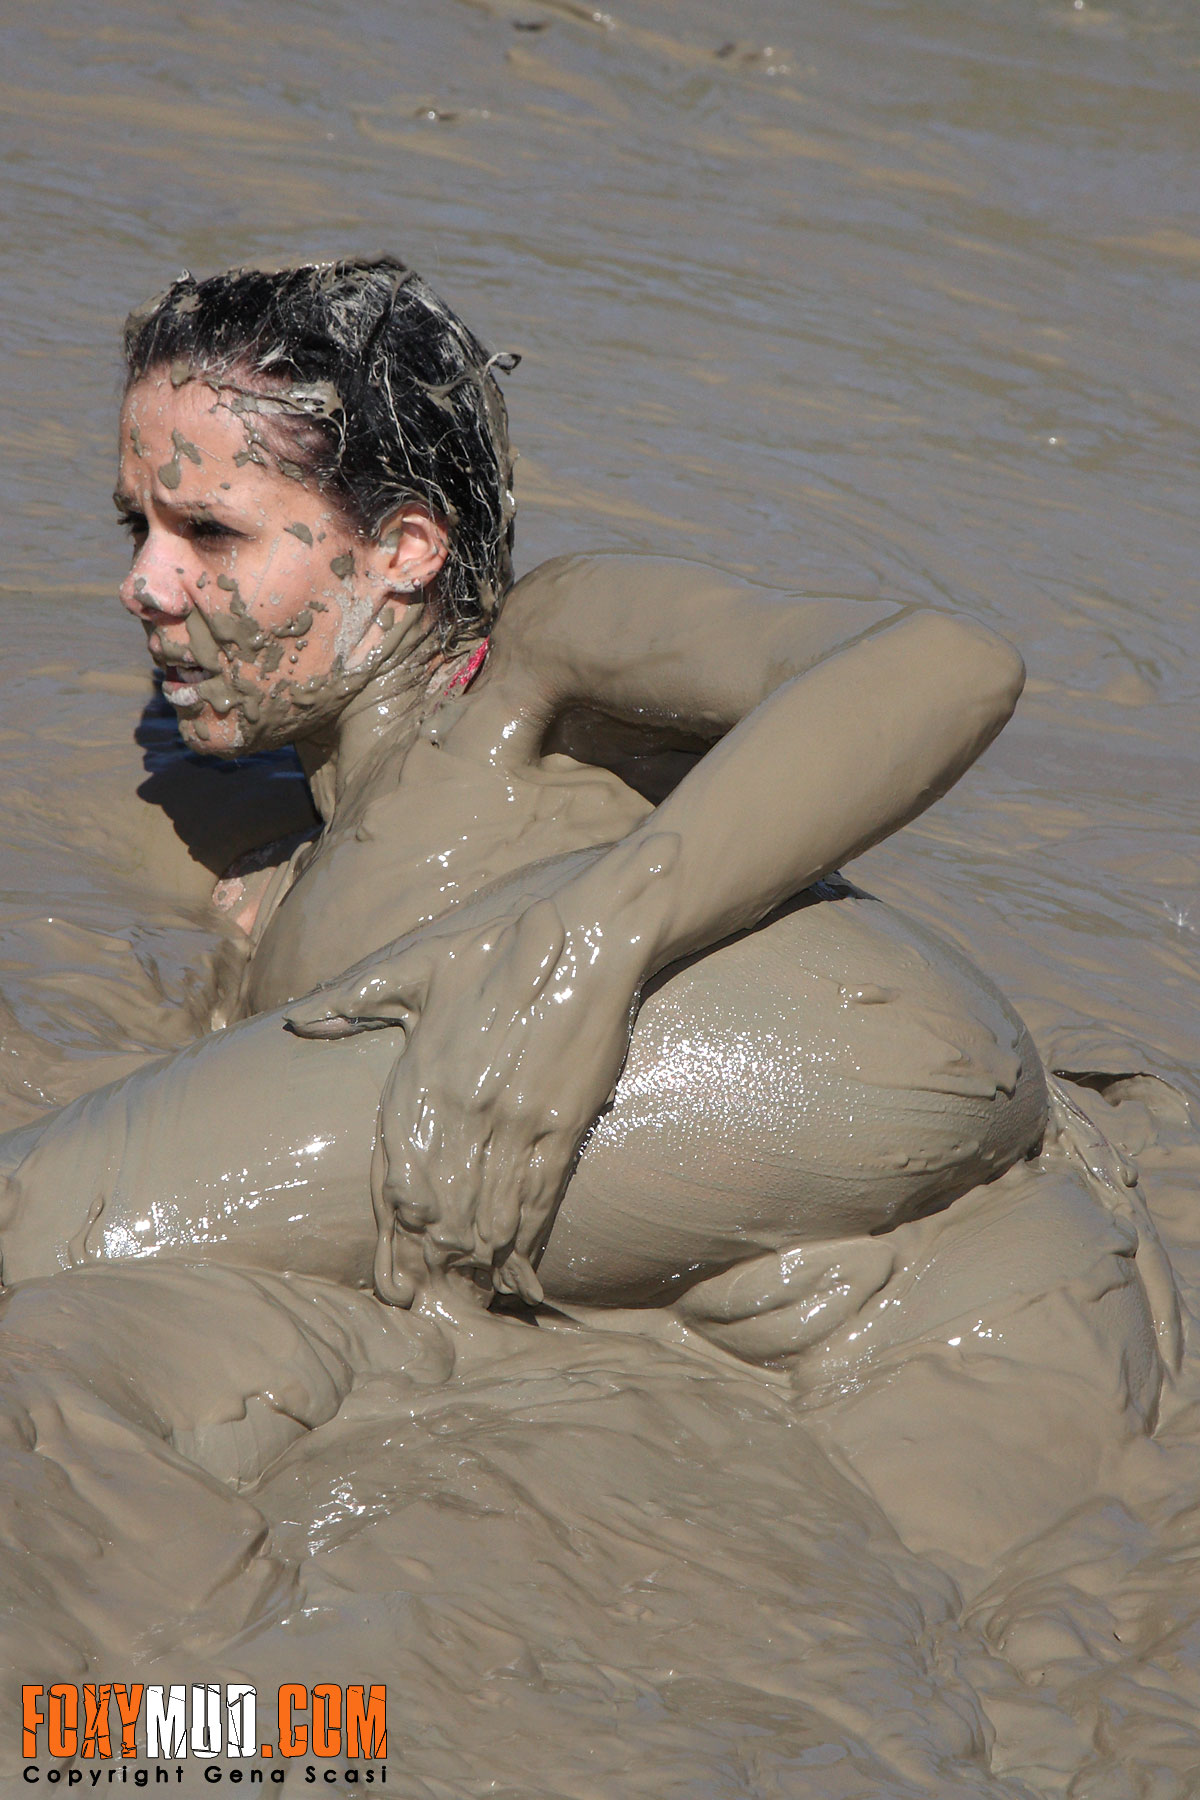 Naked girl in mud apologise, but